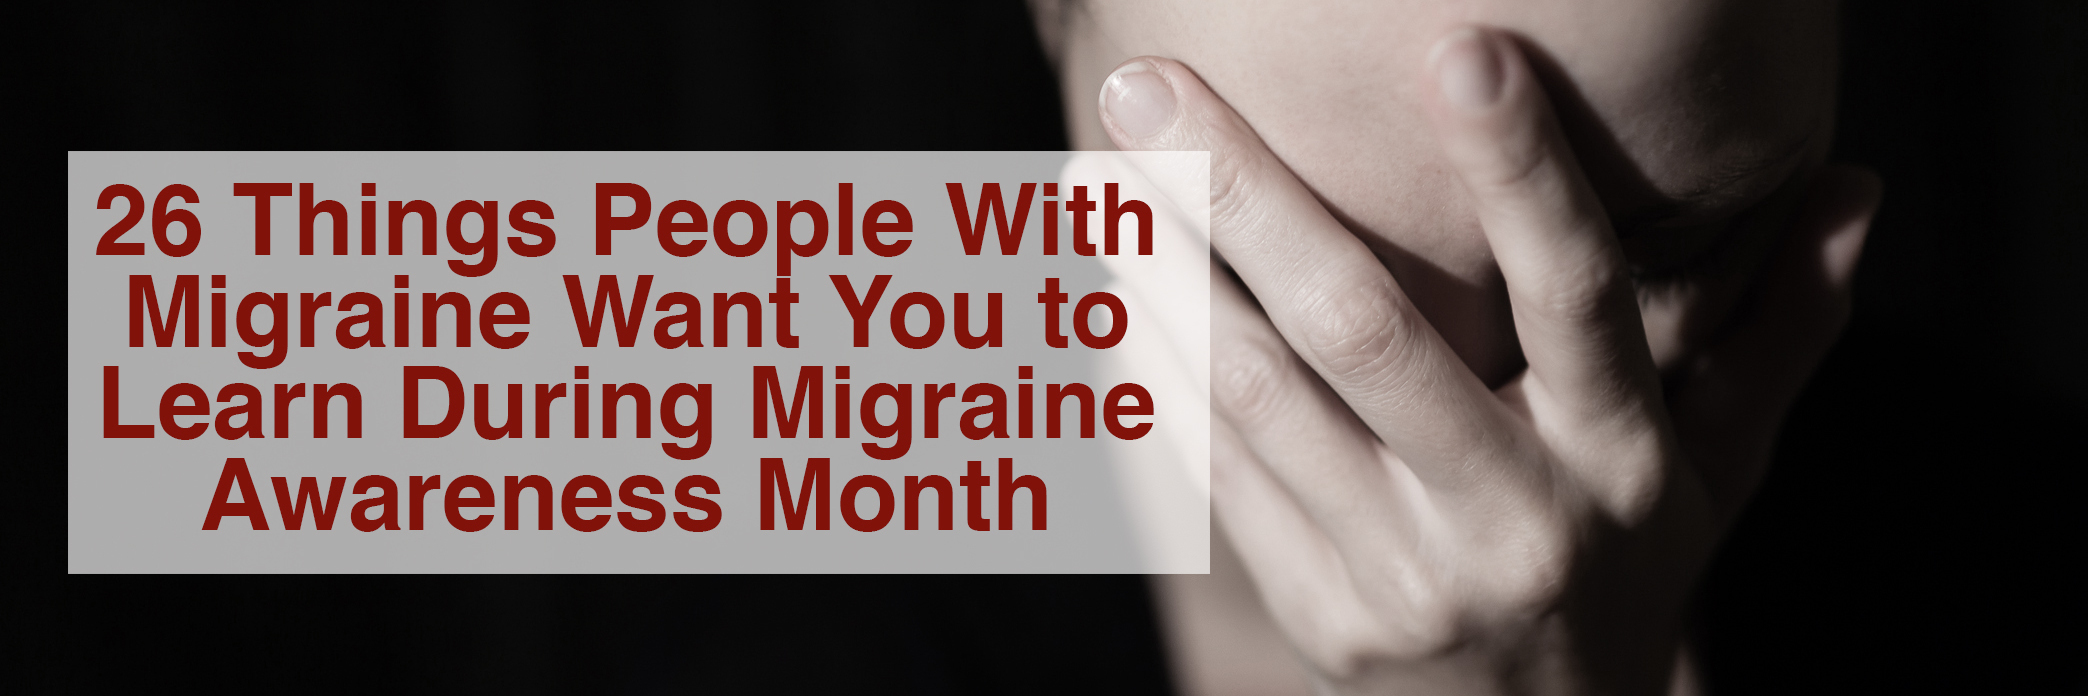 26 things people with migraine want you to learn during migraine awareness month